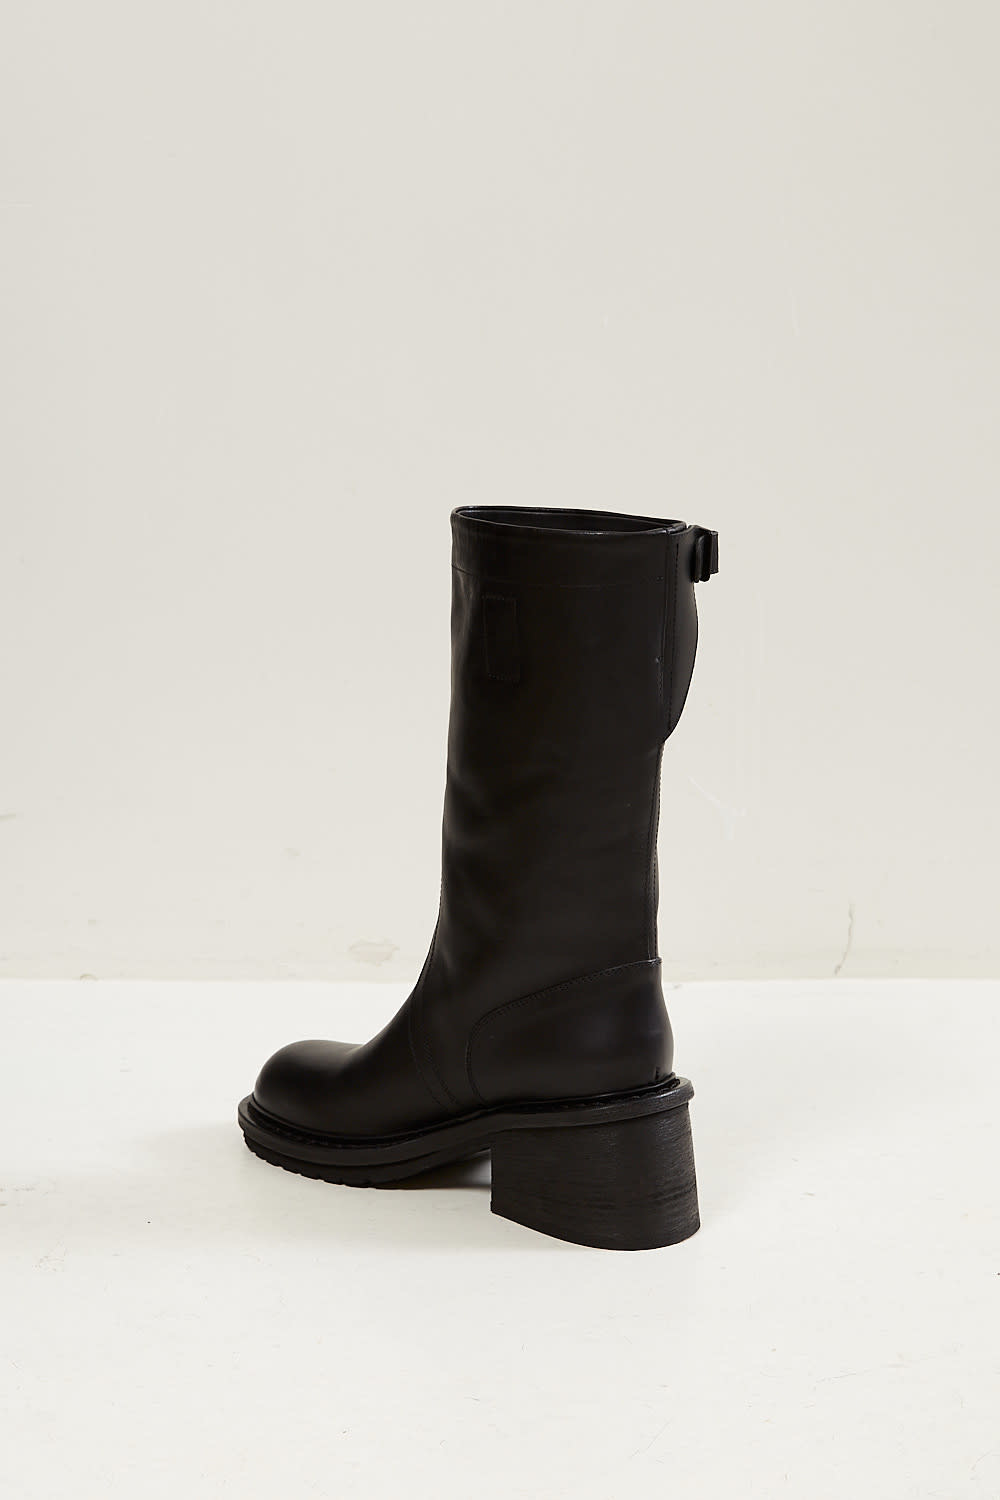 Ann Demeulemeester - Tucson nero boots